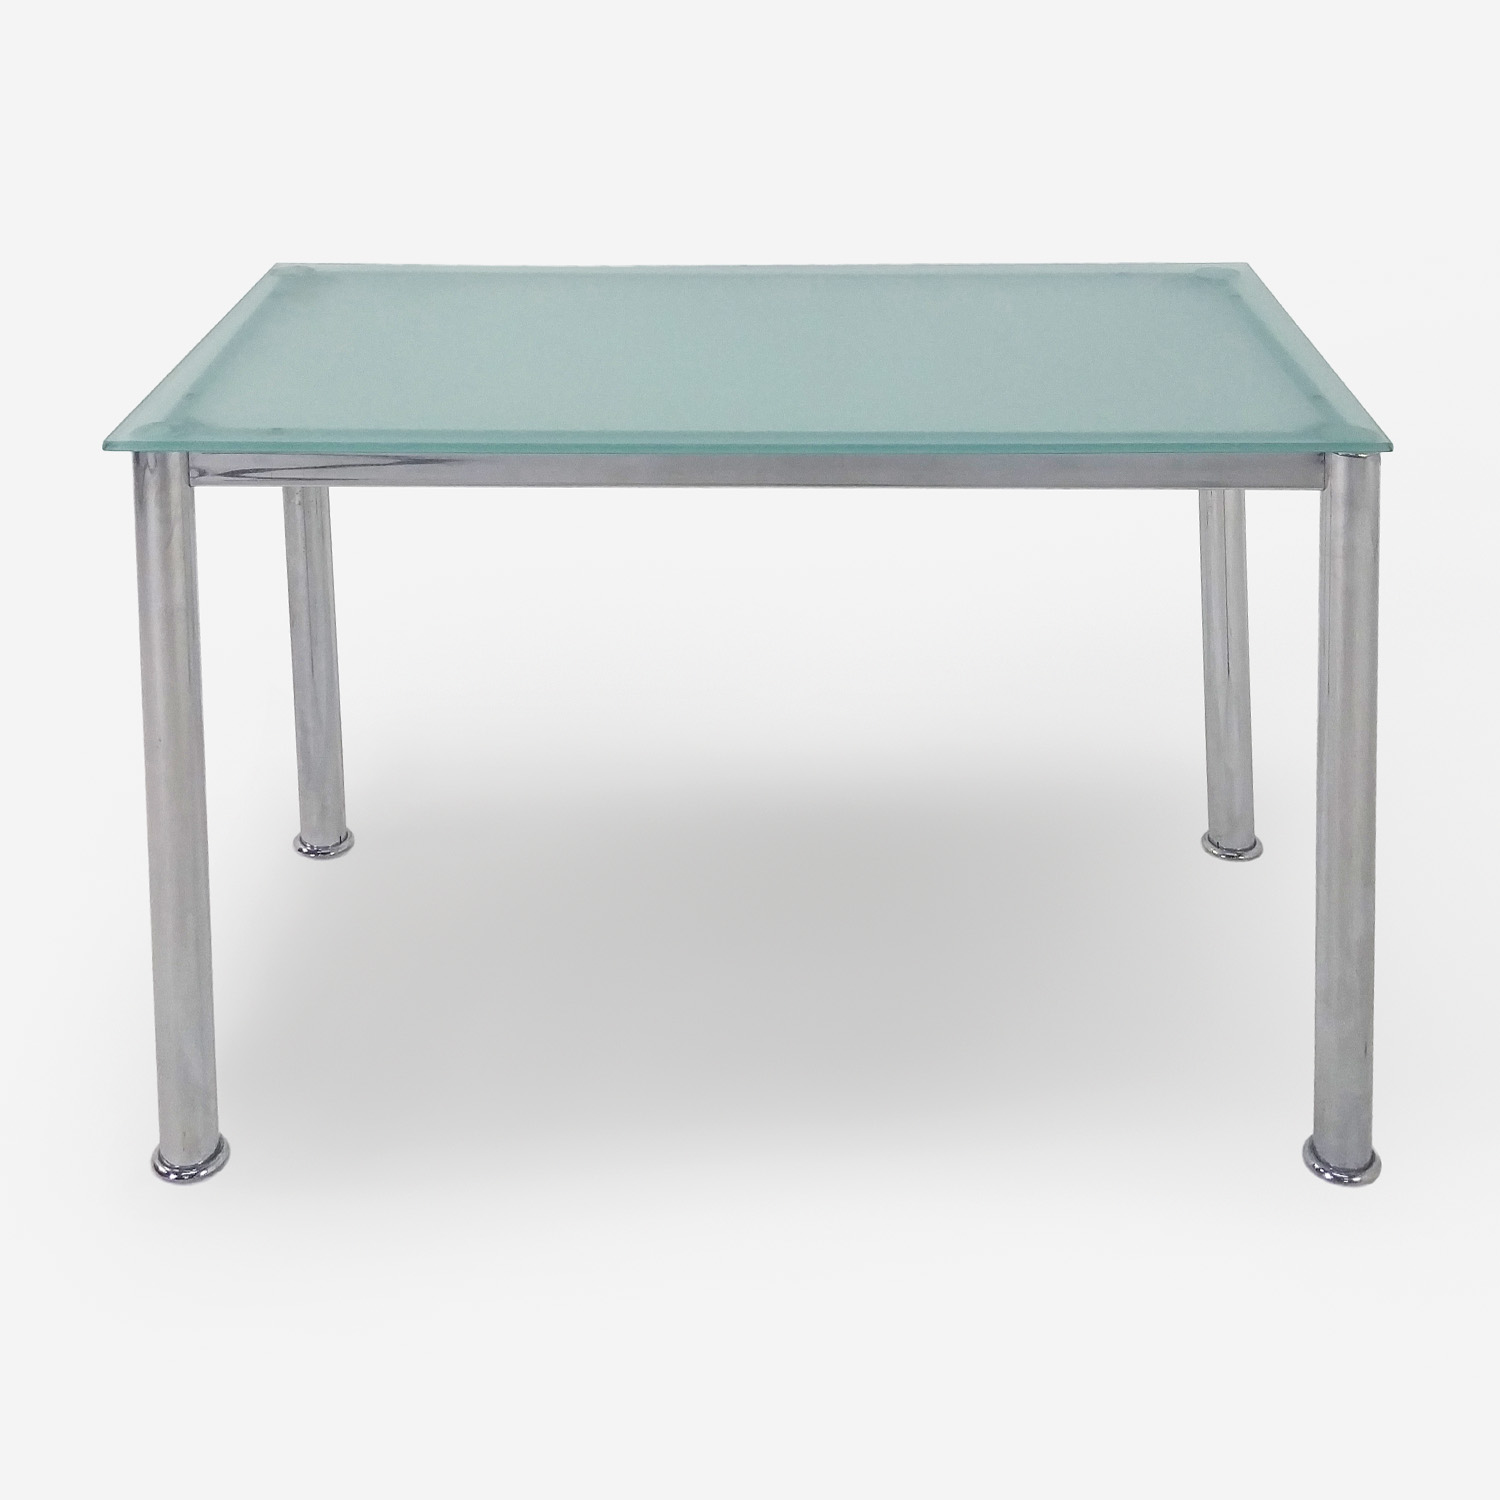 Designer Glass Office or Dining Table on sale